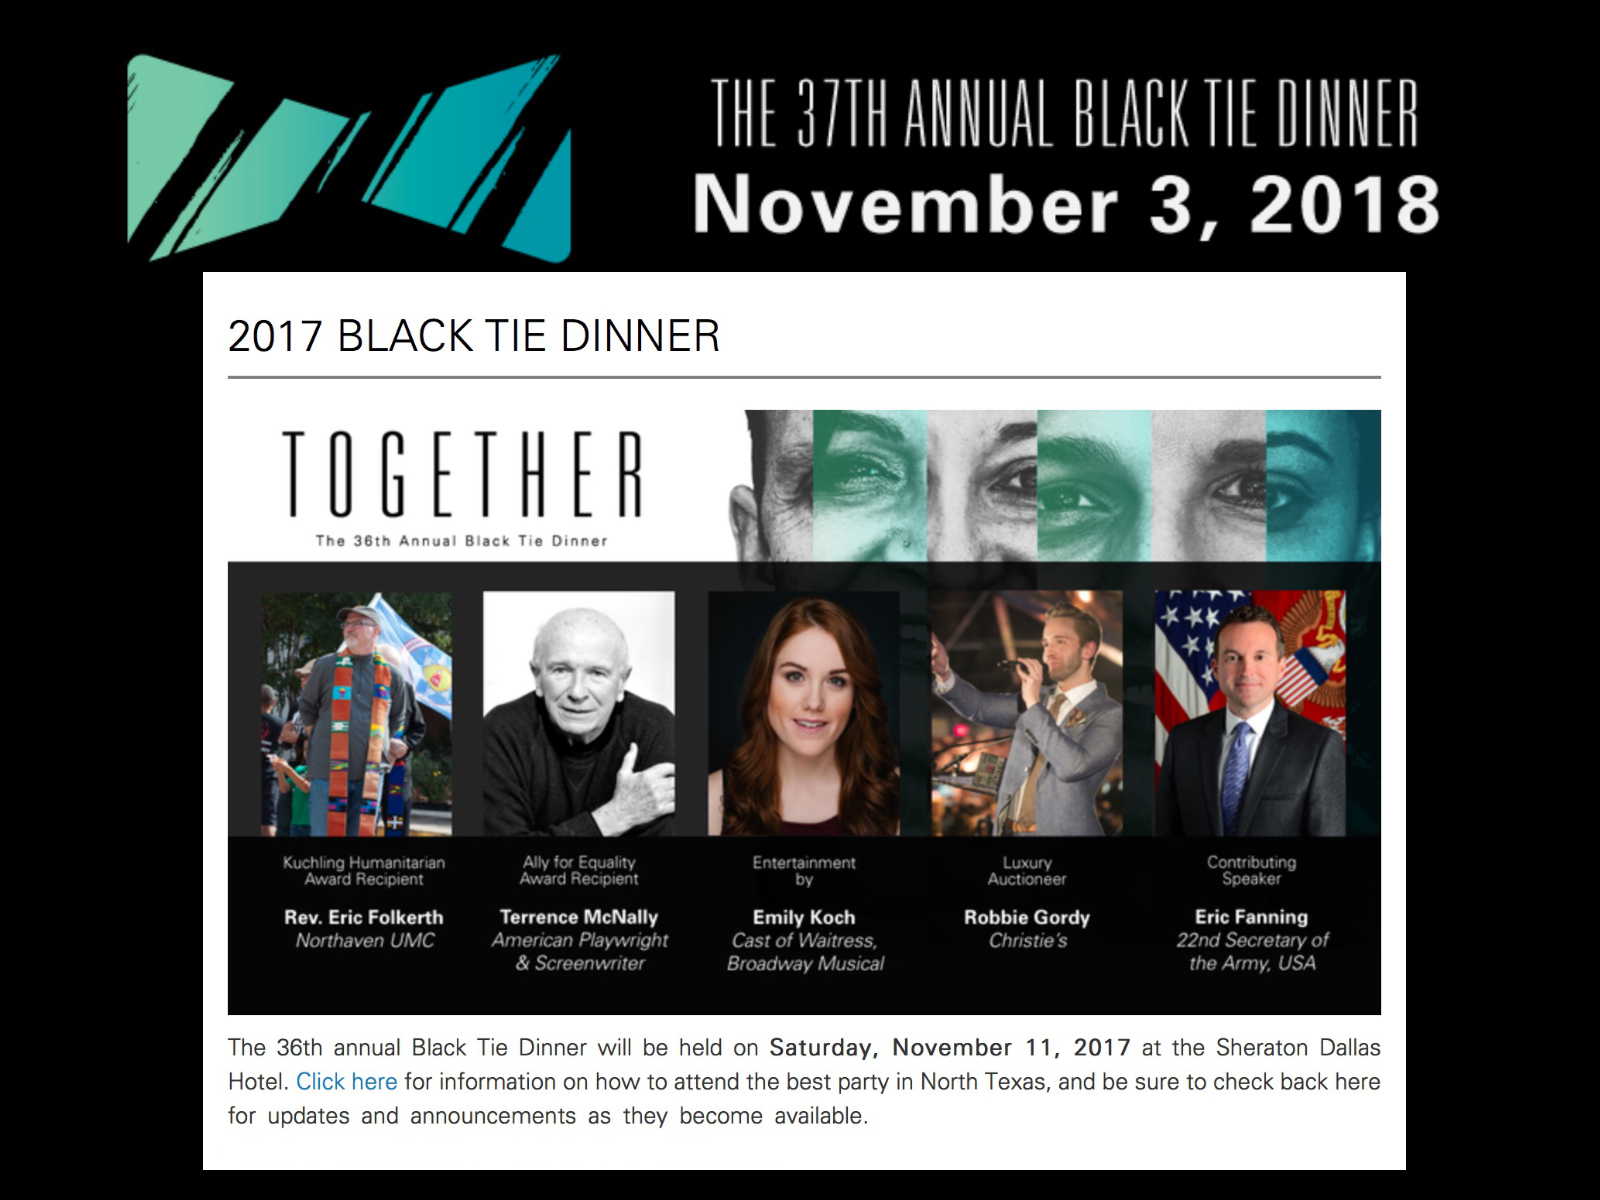 2017 Black Tie Dinner fund raiser